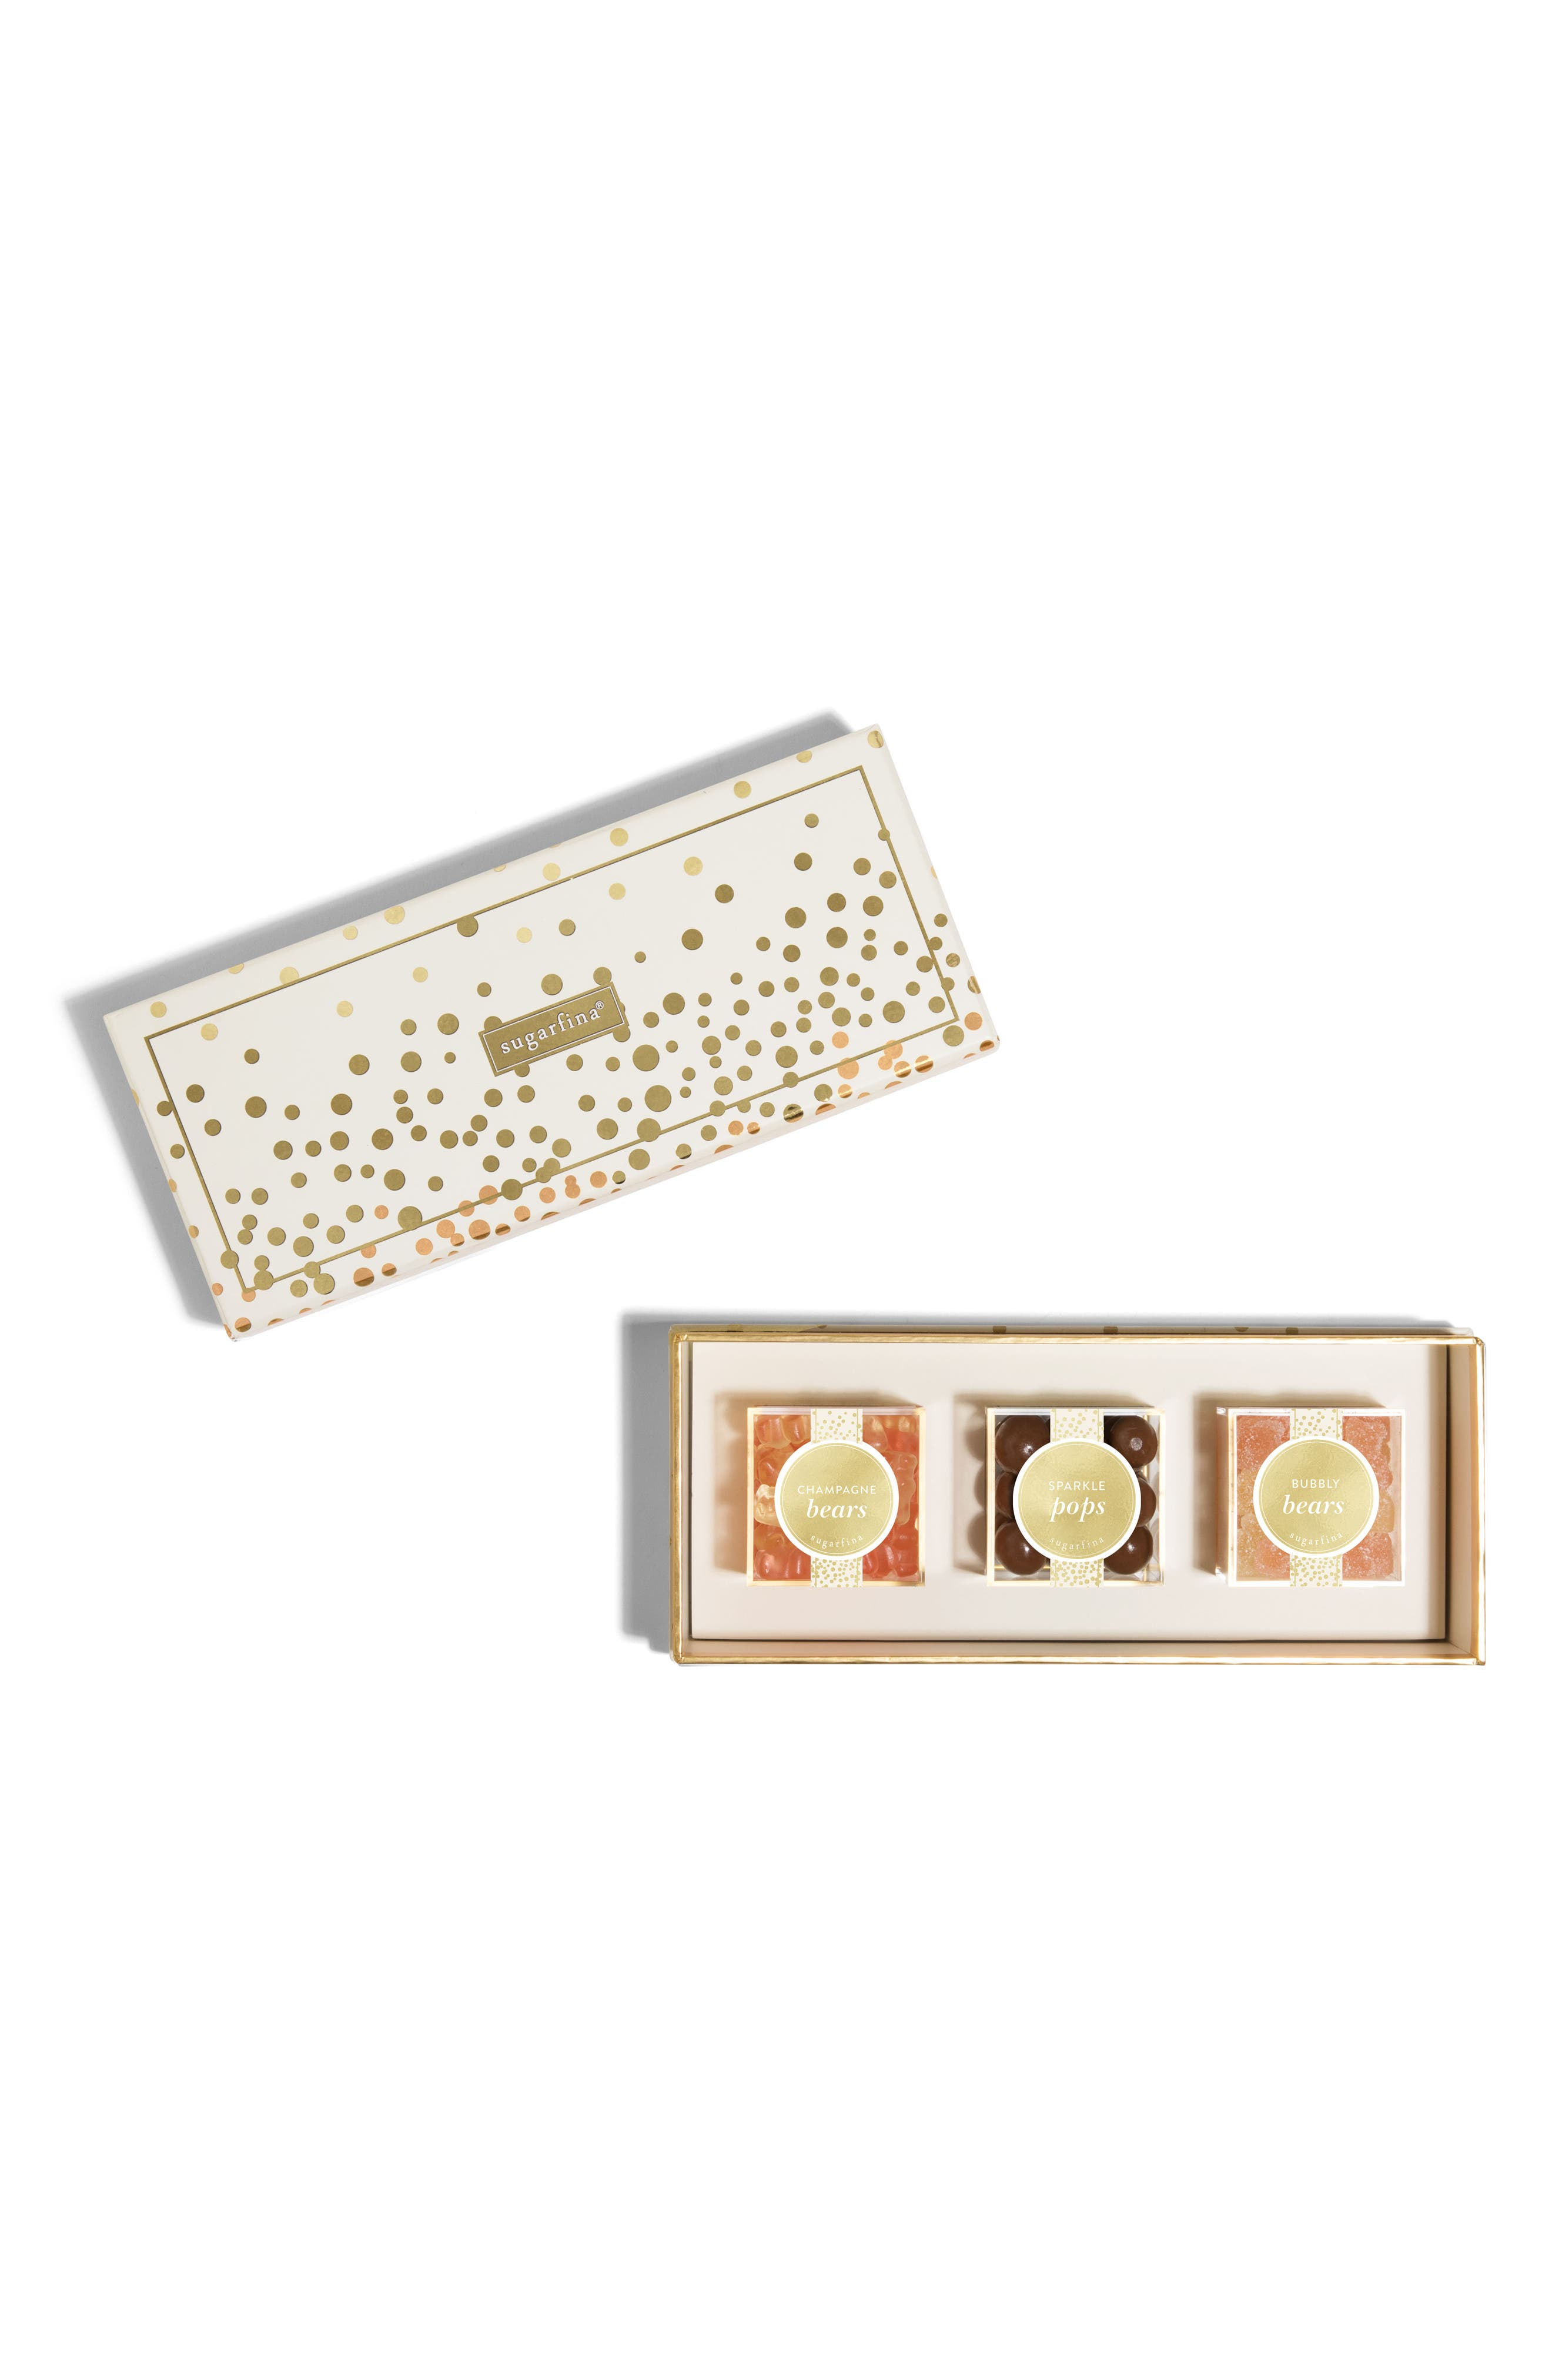 Sweet & Sparkling 3-Piece Candy Bento Box,                             Alternate thumbnail 3, color,                             250